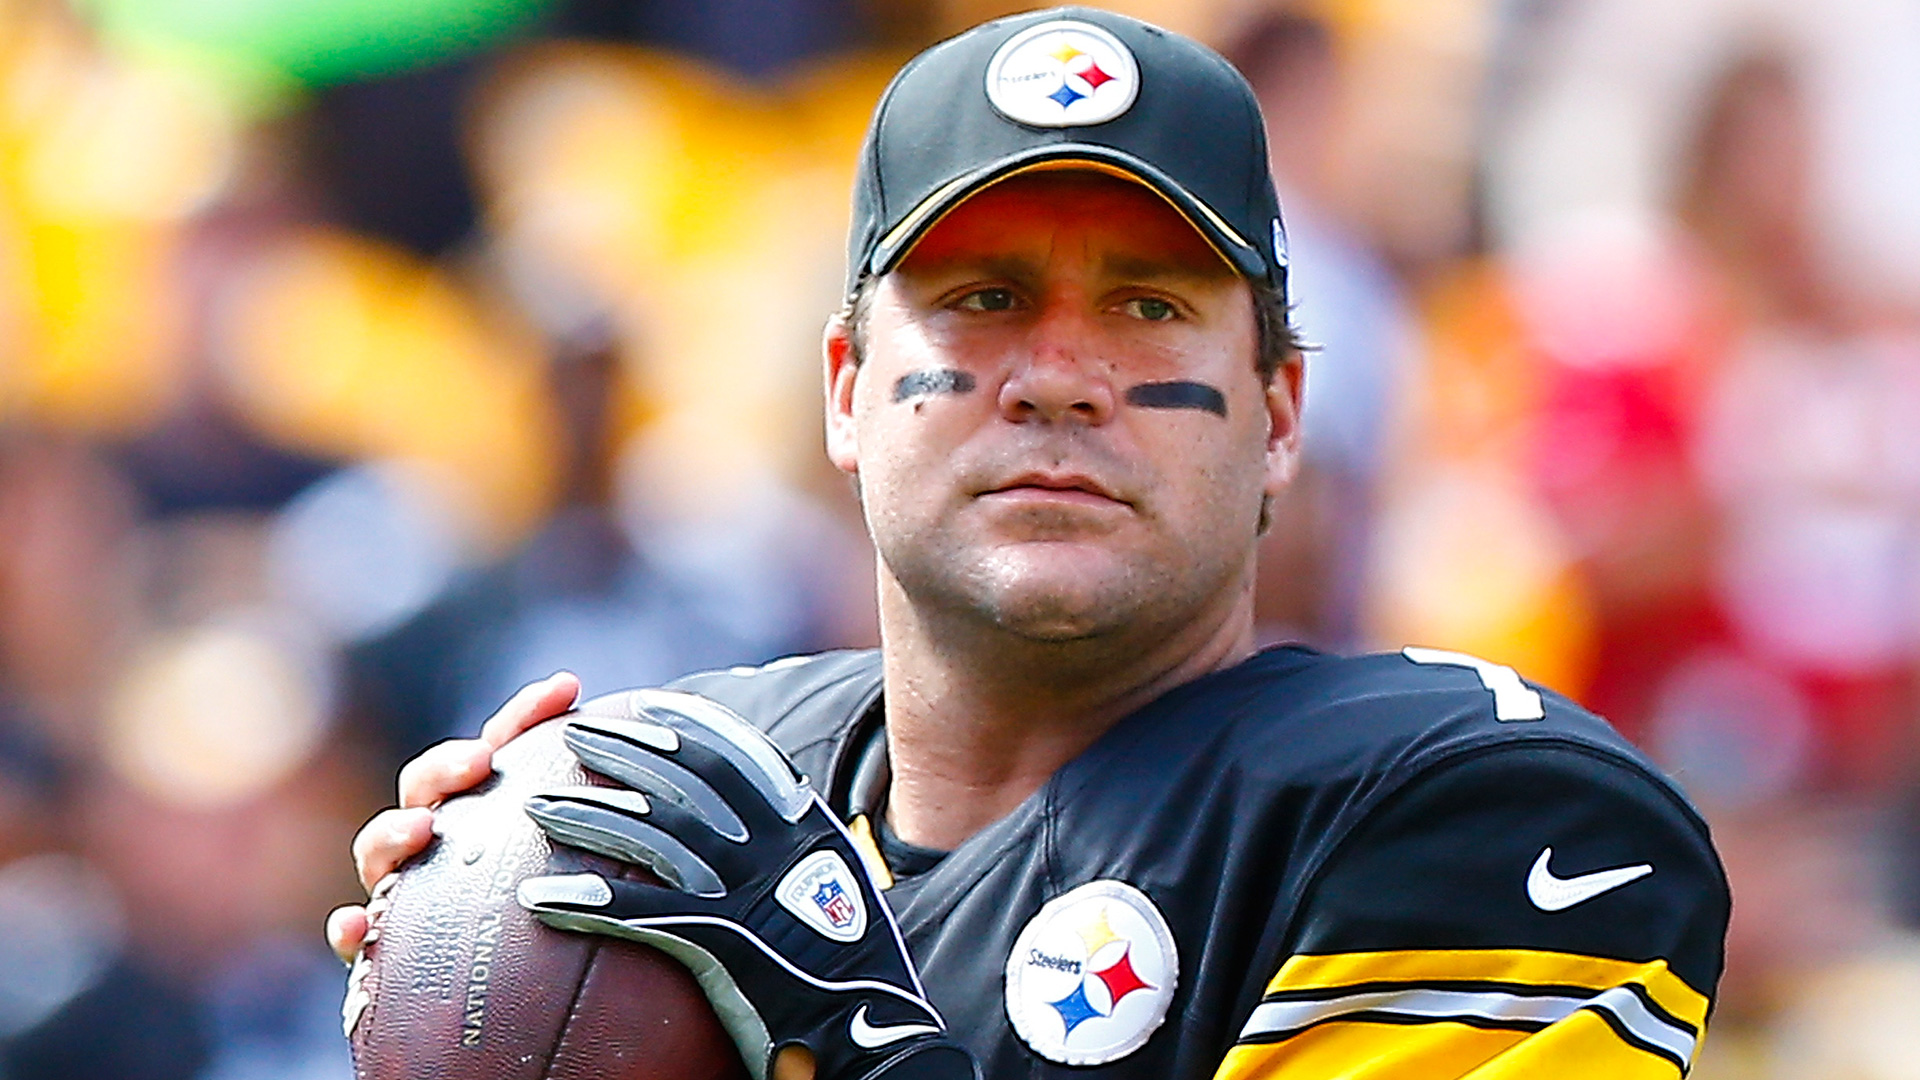 Ben Roethlisbergers emotional reaction to Pittsburgh drafting his potential replacement is understandable But the Steelers made the right move because